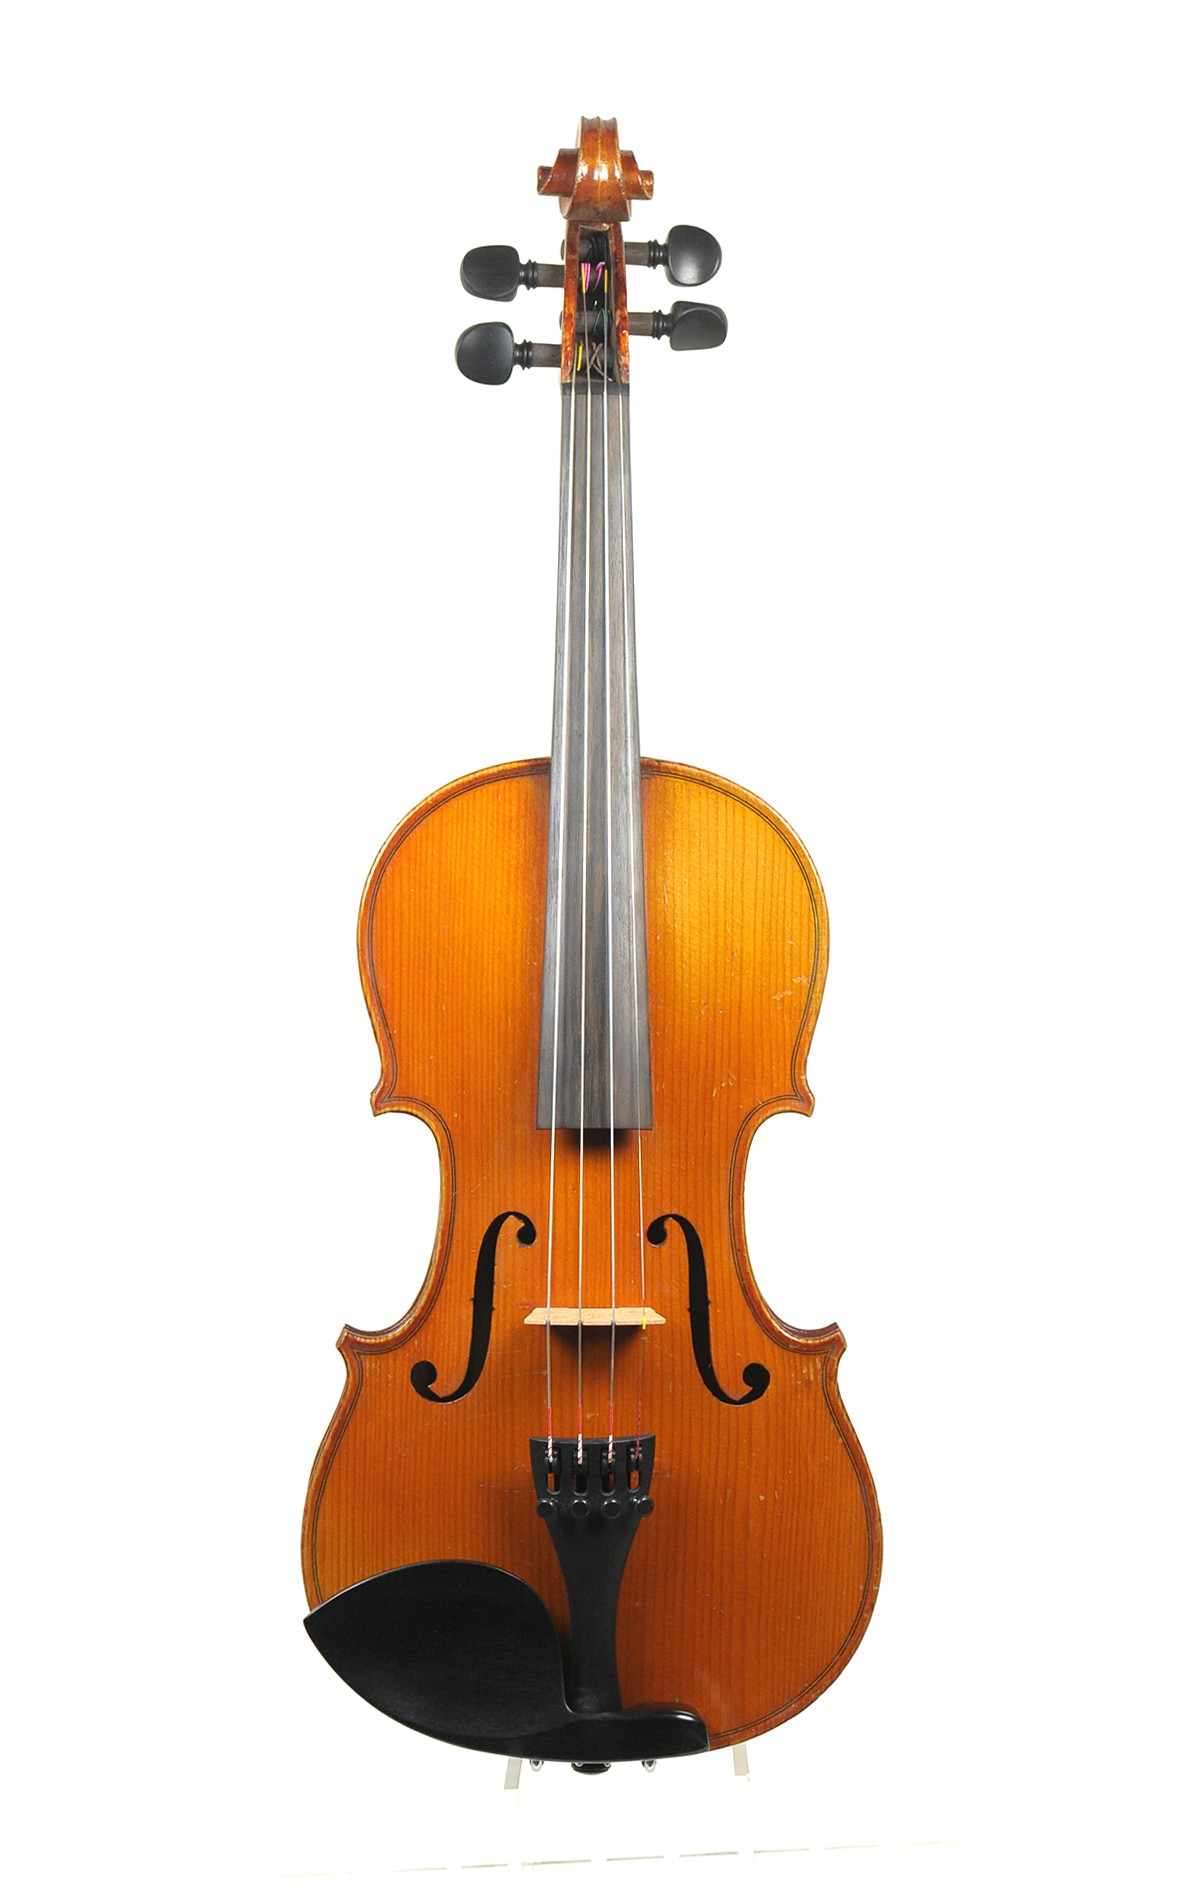 Attractive antique French 3/4 Mansuy violin